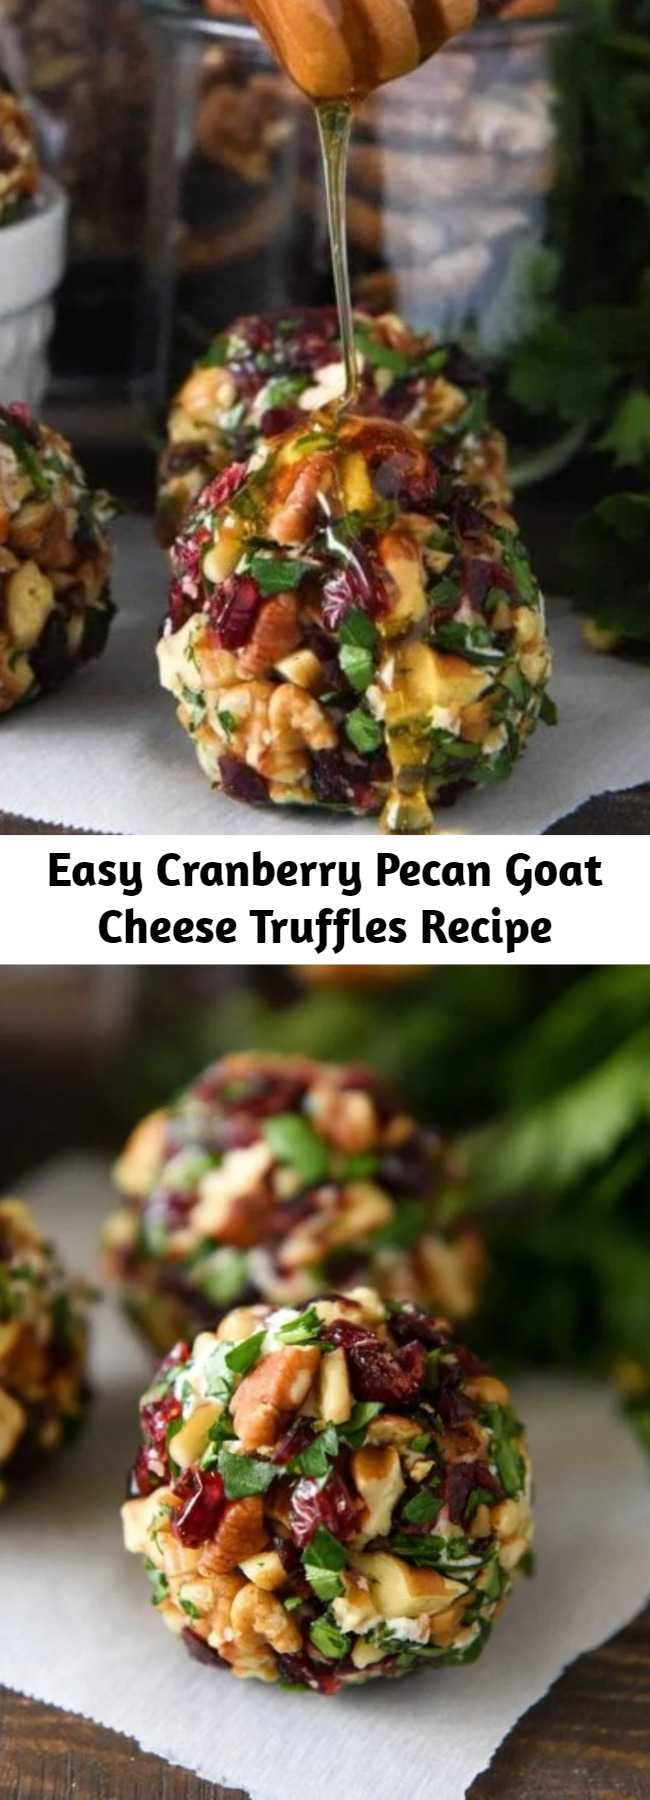 Easy Cranberry Pecan Goat Cheese Truffles Recipe - These festive mini cheese balls only take 15 minutes to make! Drizzle them with honey to really take them over the top! #CranberryPecanGoatCheeseTruffles #Truffles #GoatCheeseTruffles #CheeseBall #Appetizer #Christmas #NewYears #ChristmasAppetizers #GoatCheese #Cranberries